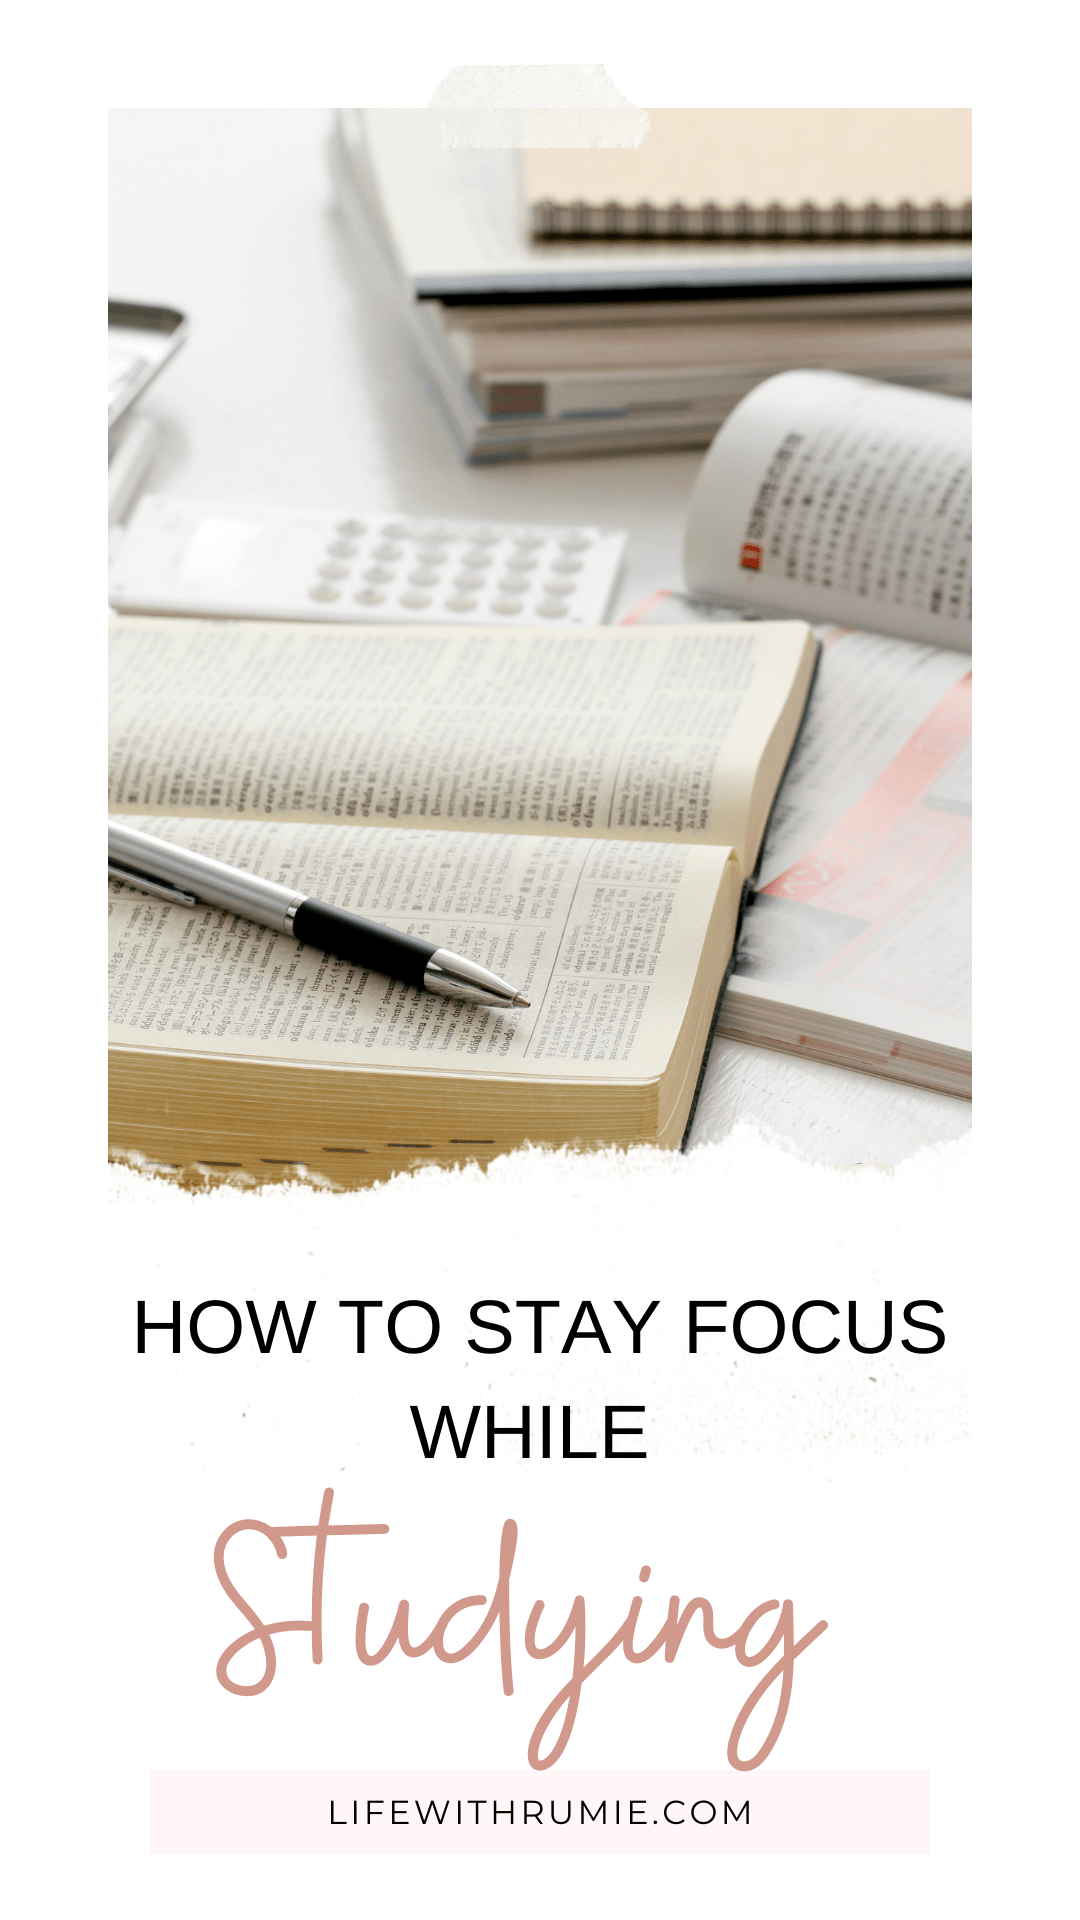 how to stay focused while studying